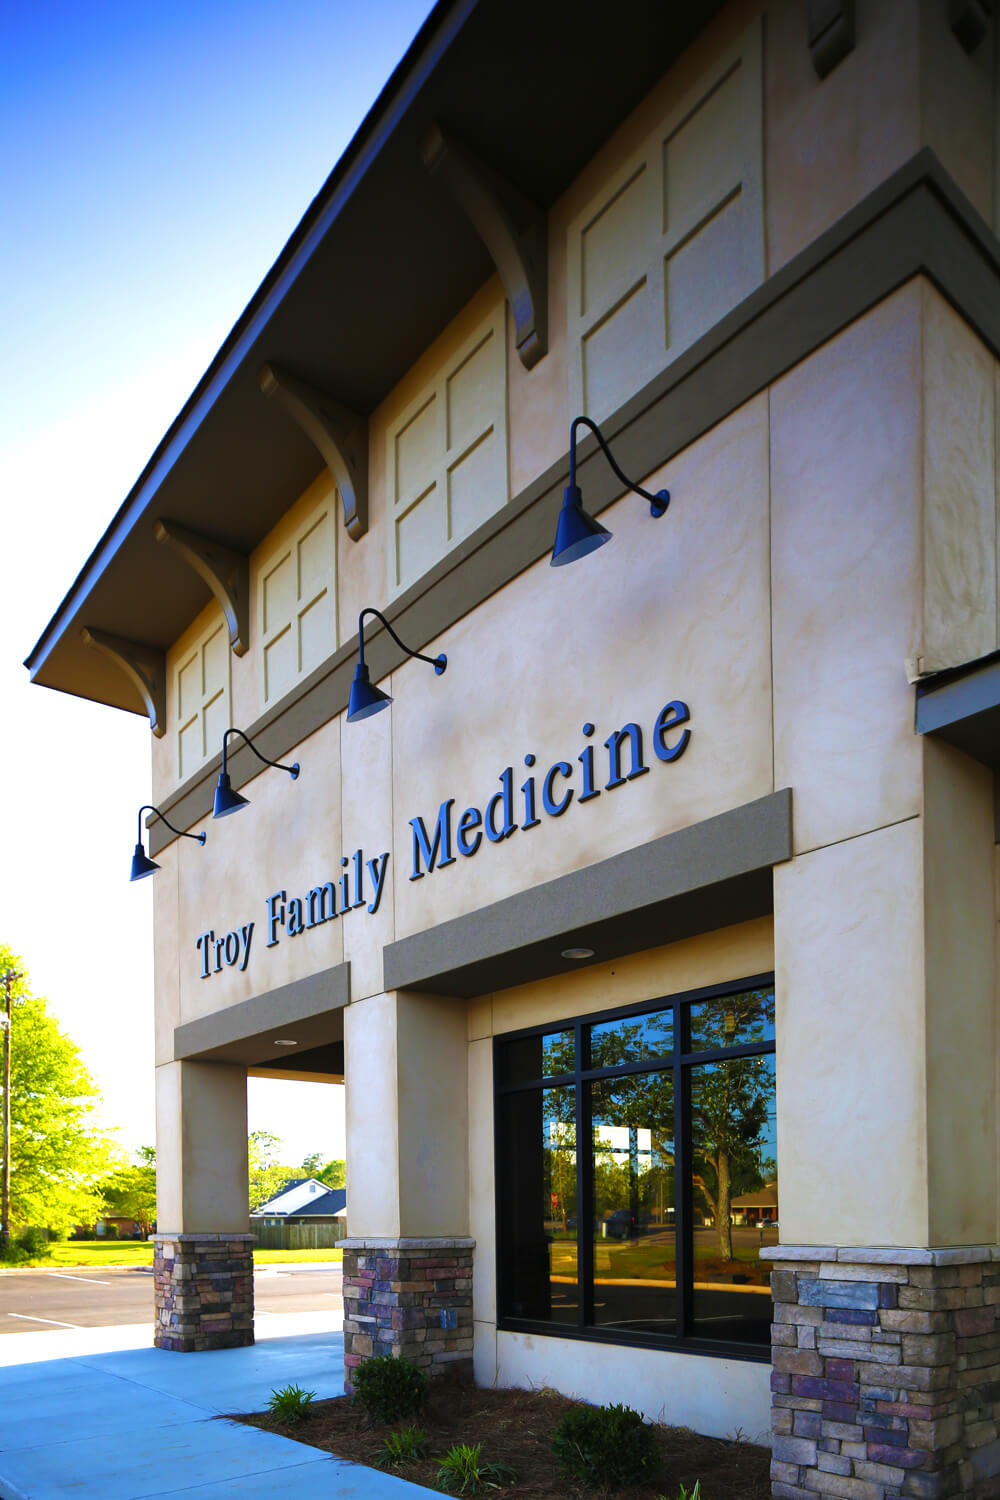 Troy Family Medicine Exterior Detail at Sign - Designed by Foshee Architecture